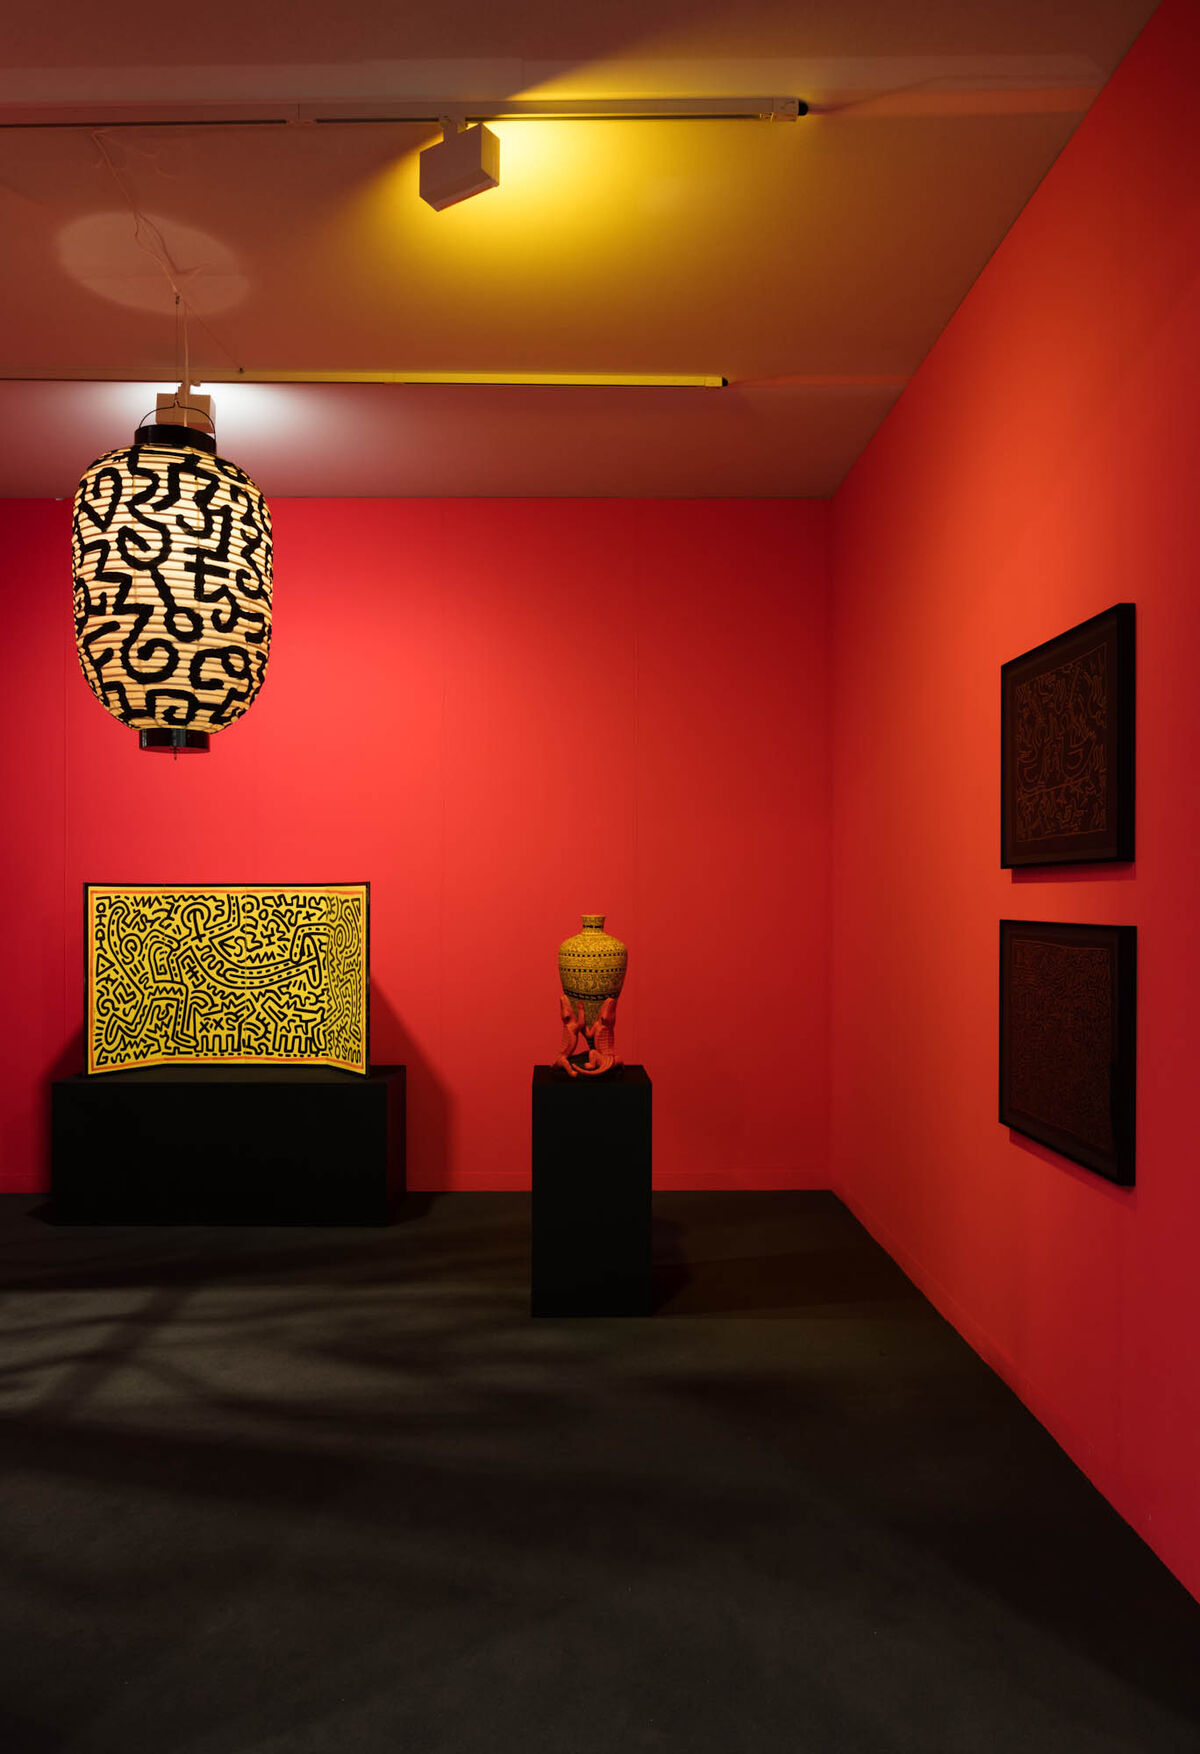 Installation view of Gladstone Gallery's booth at Art Basel in Miami Beach, 2018. © Keith Haring Foundation. Courtesy Keith Haring Foundation and Gladstone Gallery, New York and Brussels. Photography by Andrea Rosetti.